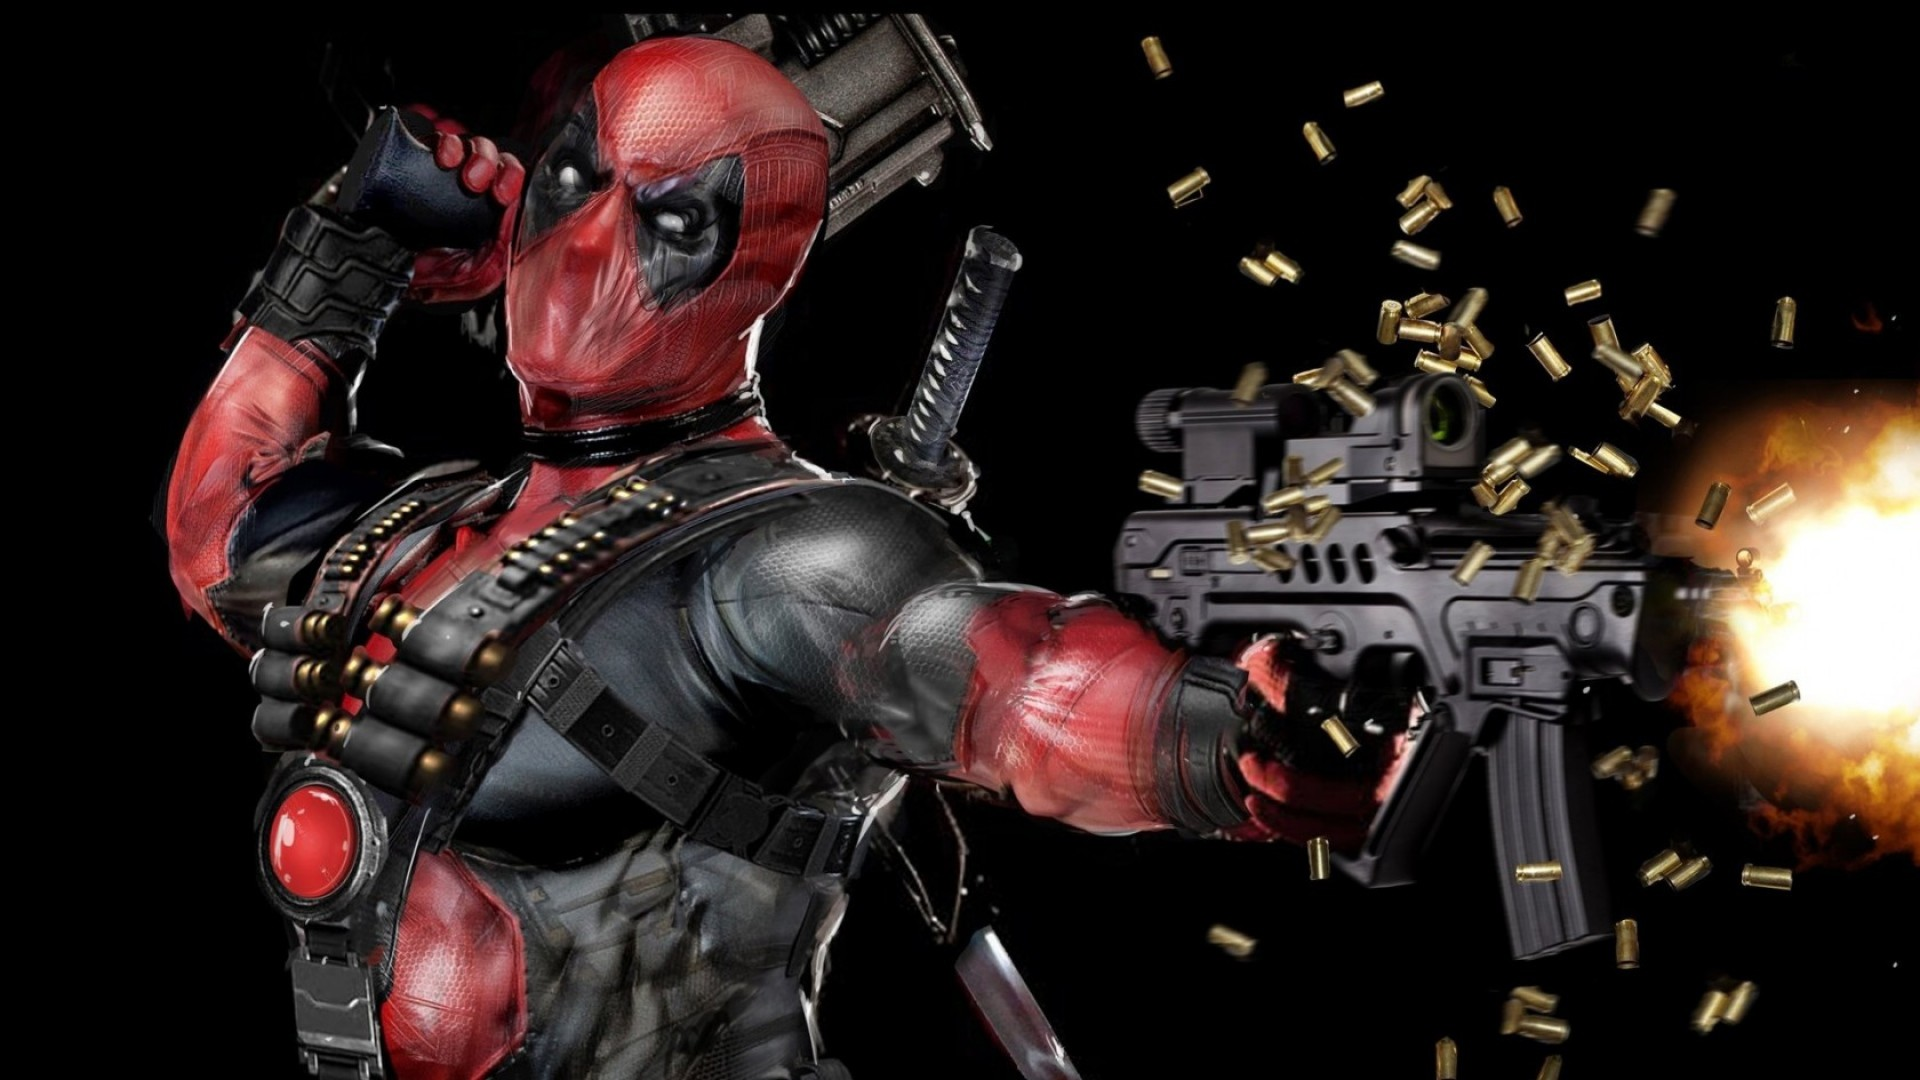 Deadpool Wallpaper HD 1680×1050 Deadpool Wallpaper (42 Wallpapers) |  Adorable Wallpapers | Shallow End of the Deadpool | Pinterest | Deadpool  wallpaper, …